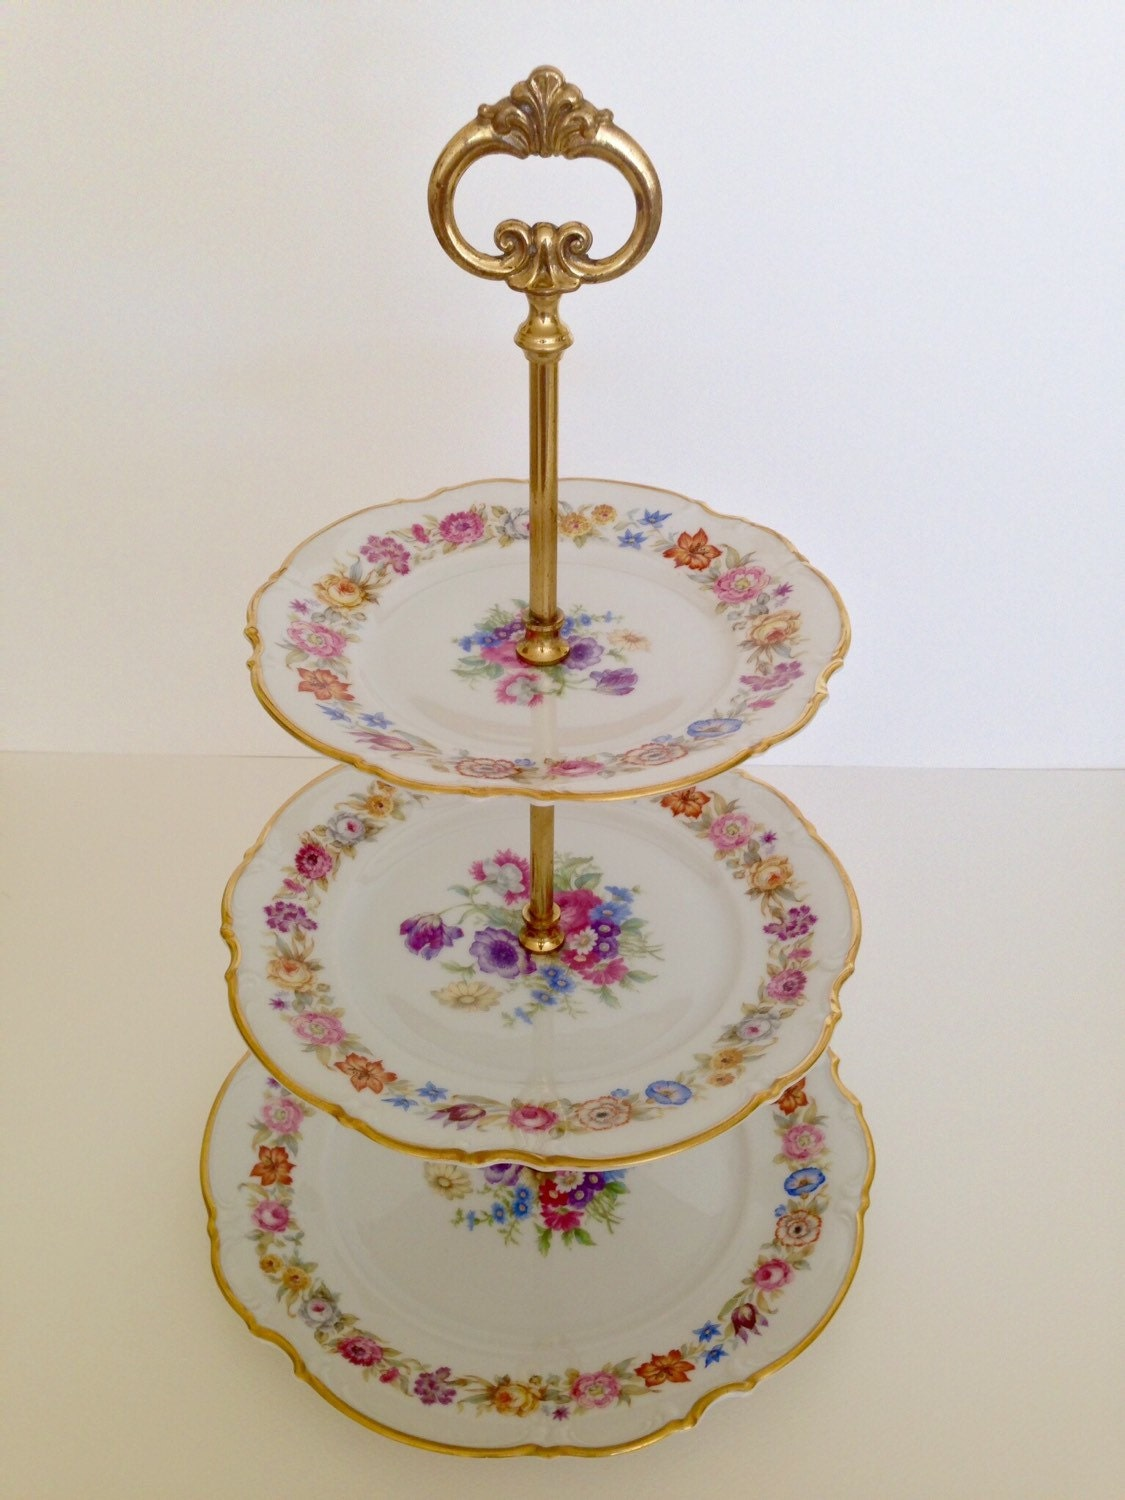 macaroon cake stand - photo #21